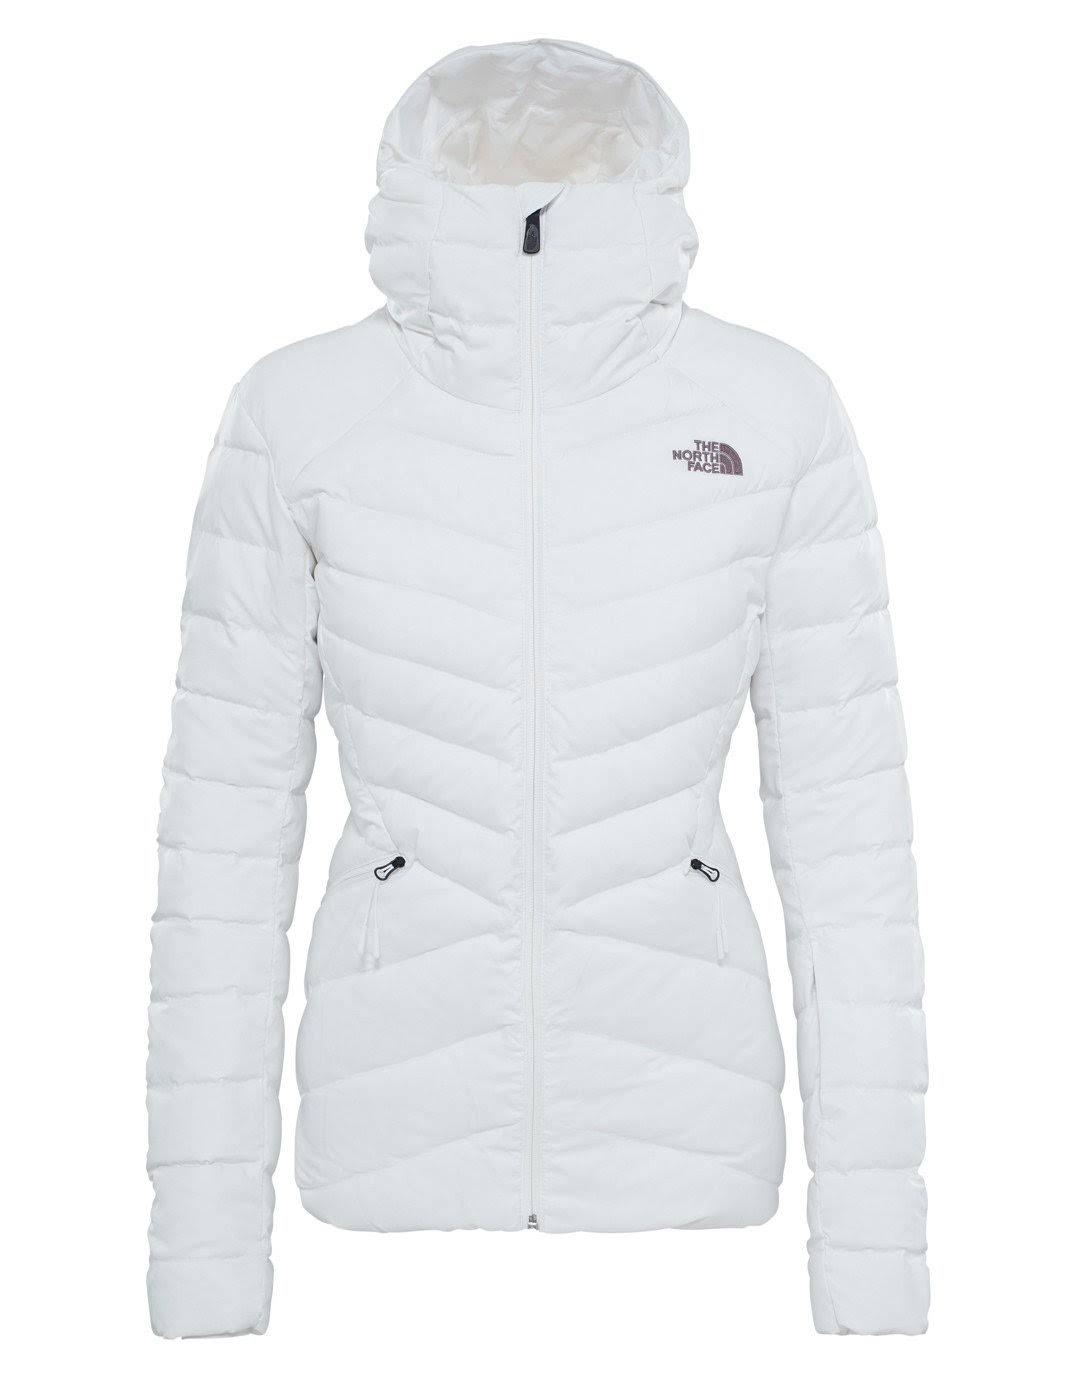 The North Face Women's Moonlight Down Jacket - XS - TNF White